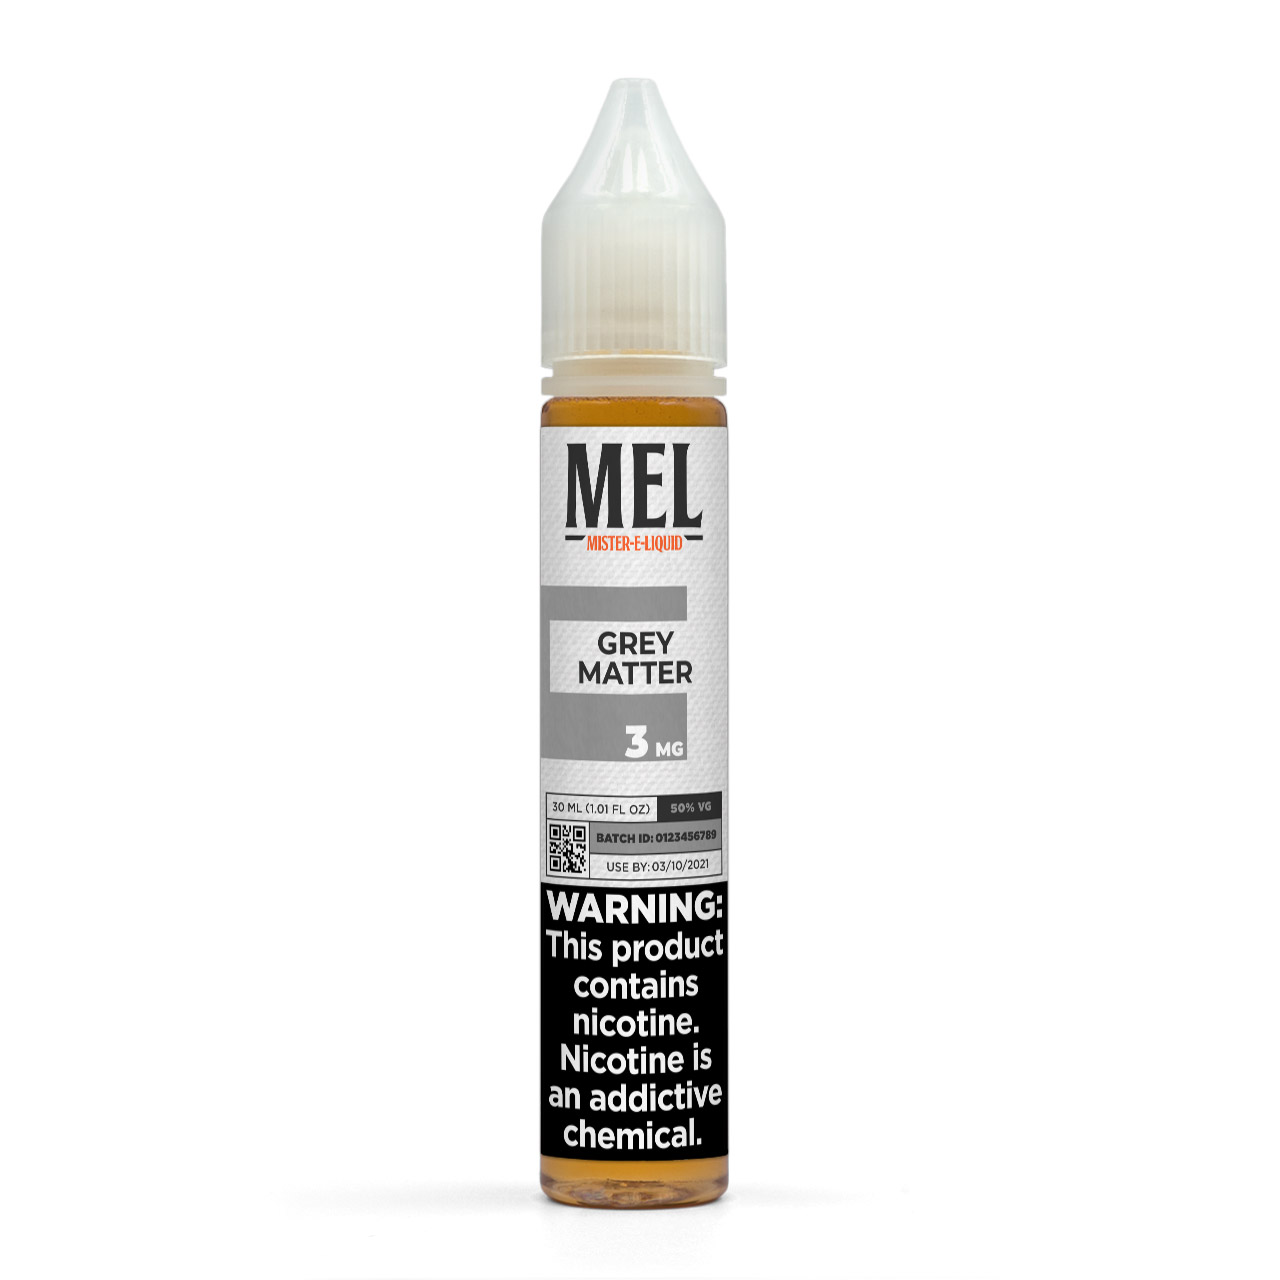 MEL Grey Matter Vape Juice, 3 mg